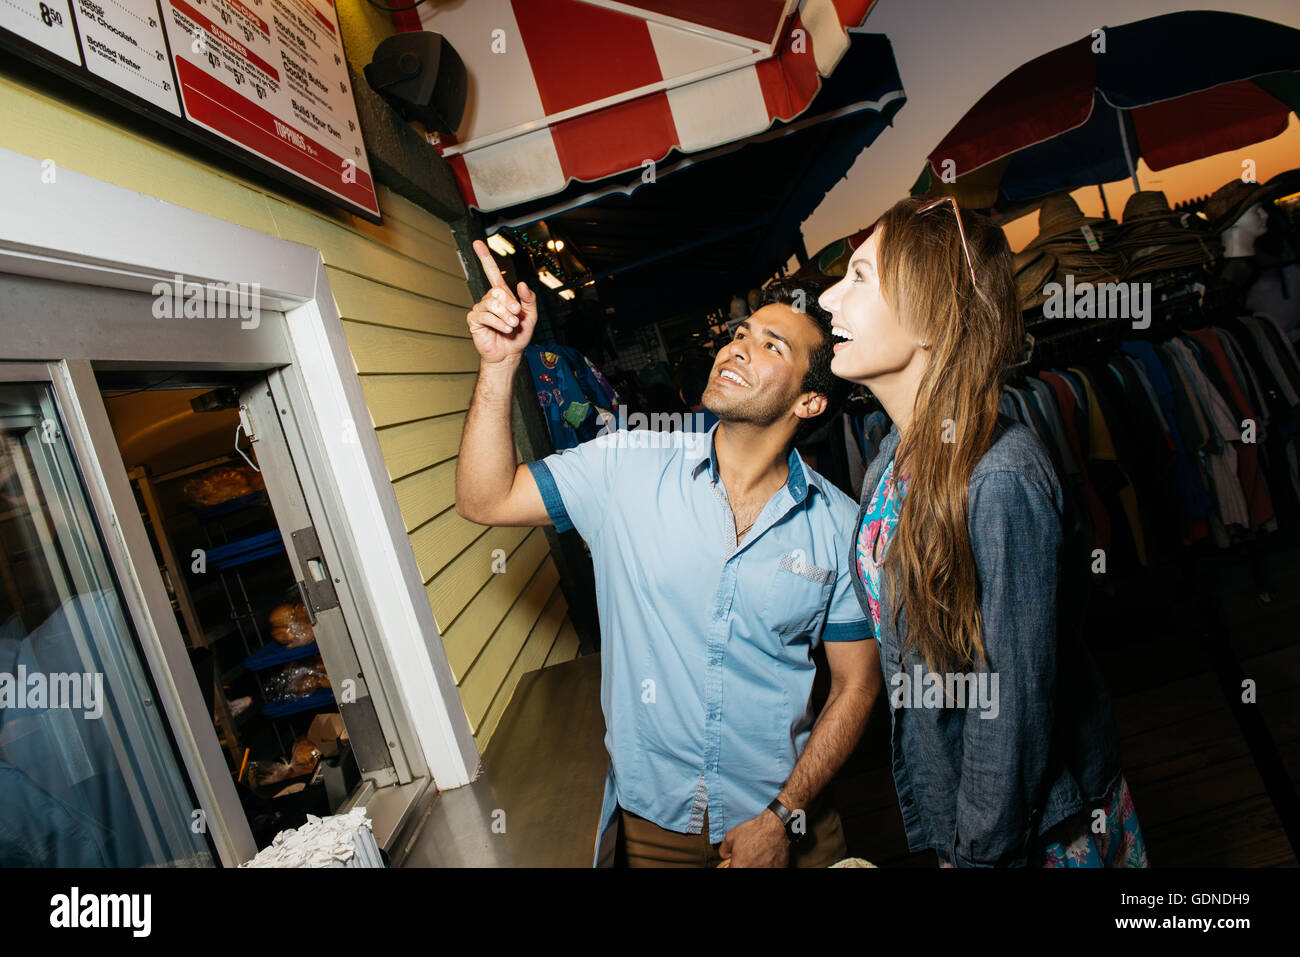 Jeune couple pointing at hotdog menu dans un parc d'attractions de nuit, Santa Monica, Californie, USA Photo Stock